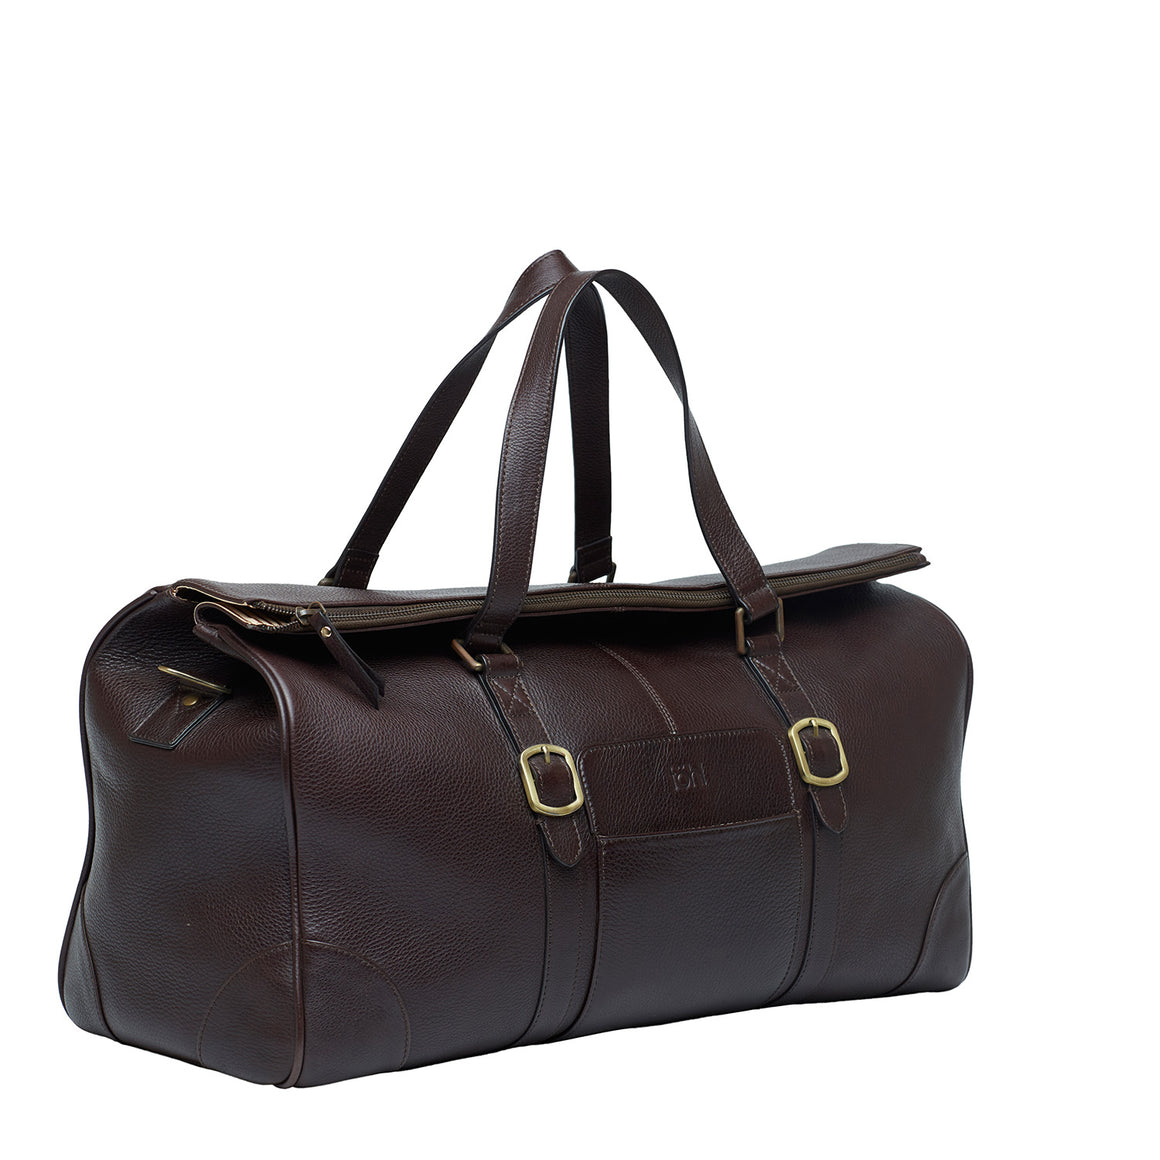 DL 0003 - TOHL PONTE MEN'S DUFFLE BAG - T MORO